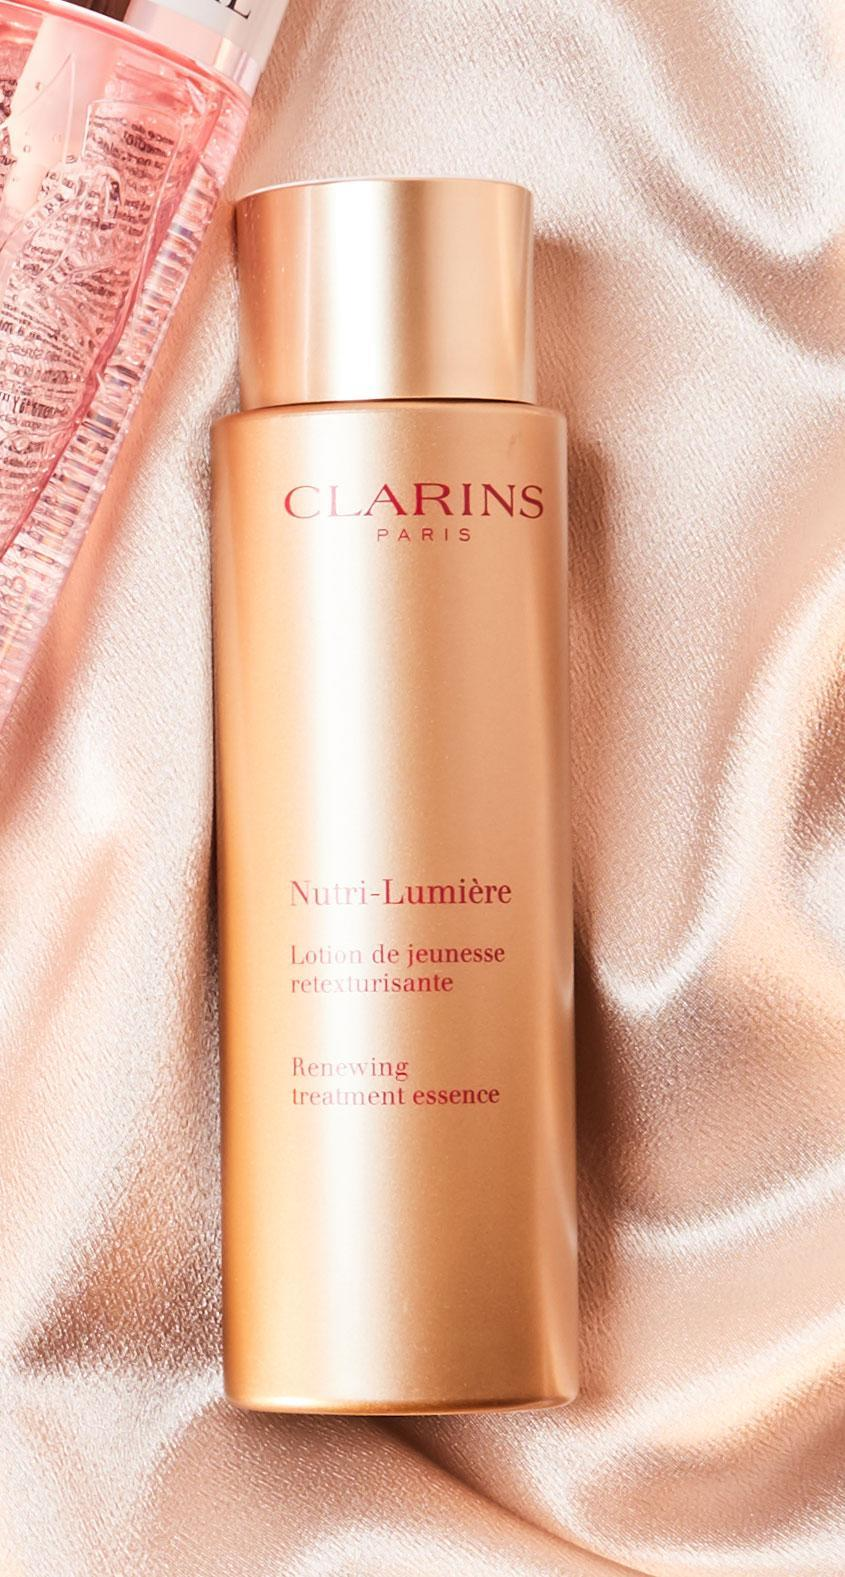 """<p>Specifically designed for mature skin, this pale-pink, milky formula utilizes oat sugars to firm and smooth. The plant-powered ingredients seek out deep wrinkles and bolster derma with antiaging nutrients.</p> <p><strong>Buy It: </strong>$63; <em><a href=""""https://click.linksynergy.com/deeplink?id=93xLBvPhAeE&mid=1237&murl=https%3A%2F%2Fshop.nordstrom.com%2Fs%2Fclarins-nutri-lumiere-renewing-treatment-essence%2F5493818&u1=SL%2C%3Cstrong%3ESummer-ProofYourSkin%3C%2Fstrong%3ECareWithaLightweight%2CHydratingEssence%2Crellis1271%2CSki%2CGal%2C7835832%2C202004%2CI"""" rel=""""nofollow noopener"""" target=""""_blank"""" data-ylk=""""slk:nordstrom.com"""" class=""""link rapid-noclick-resp"""">nordstrom.com</a></em></p>"""